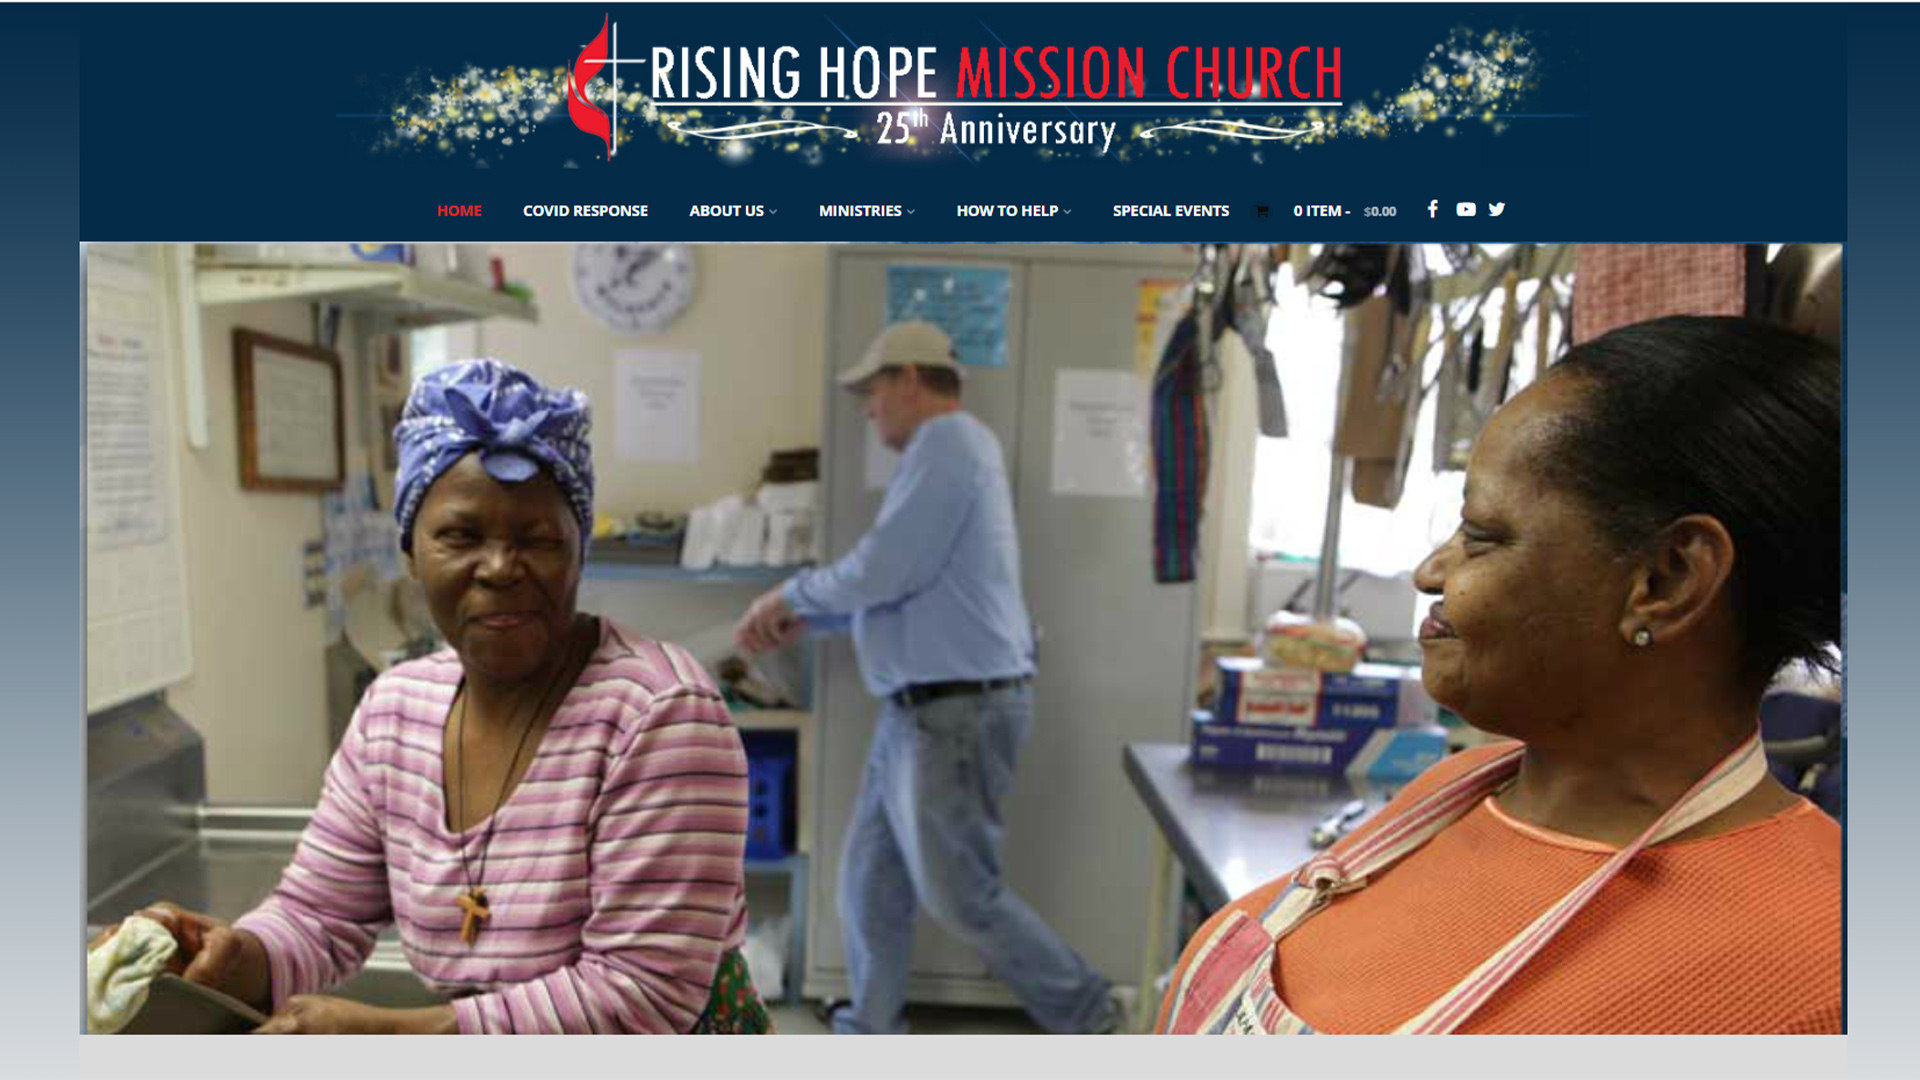 Rising Hope Mission Church